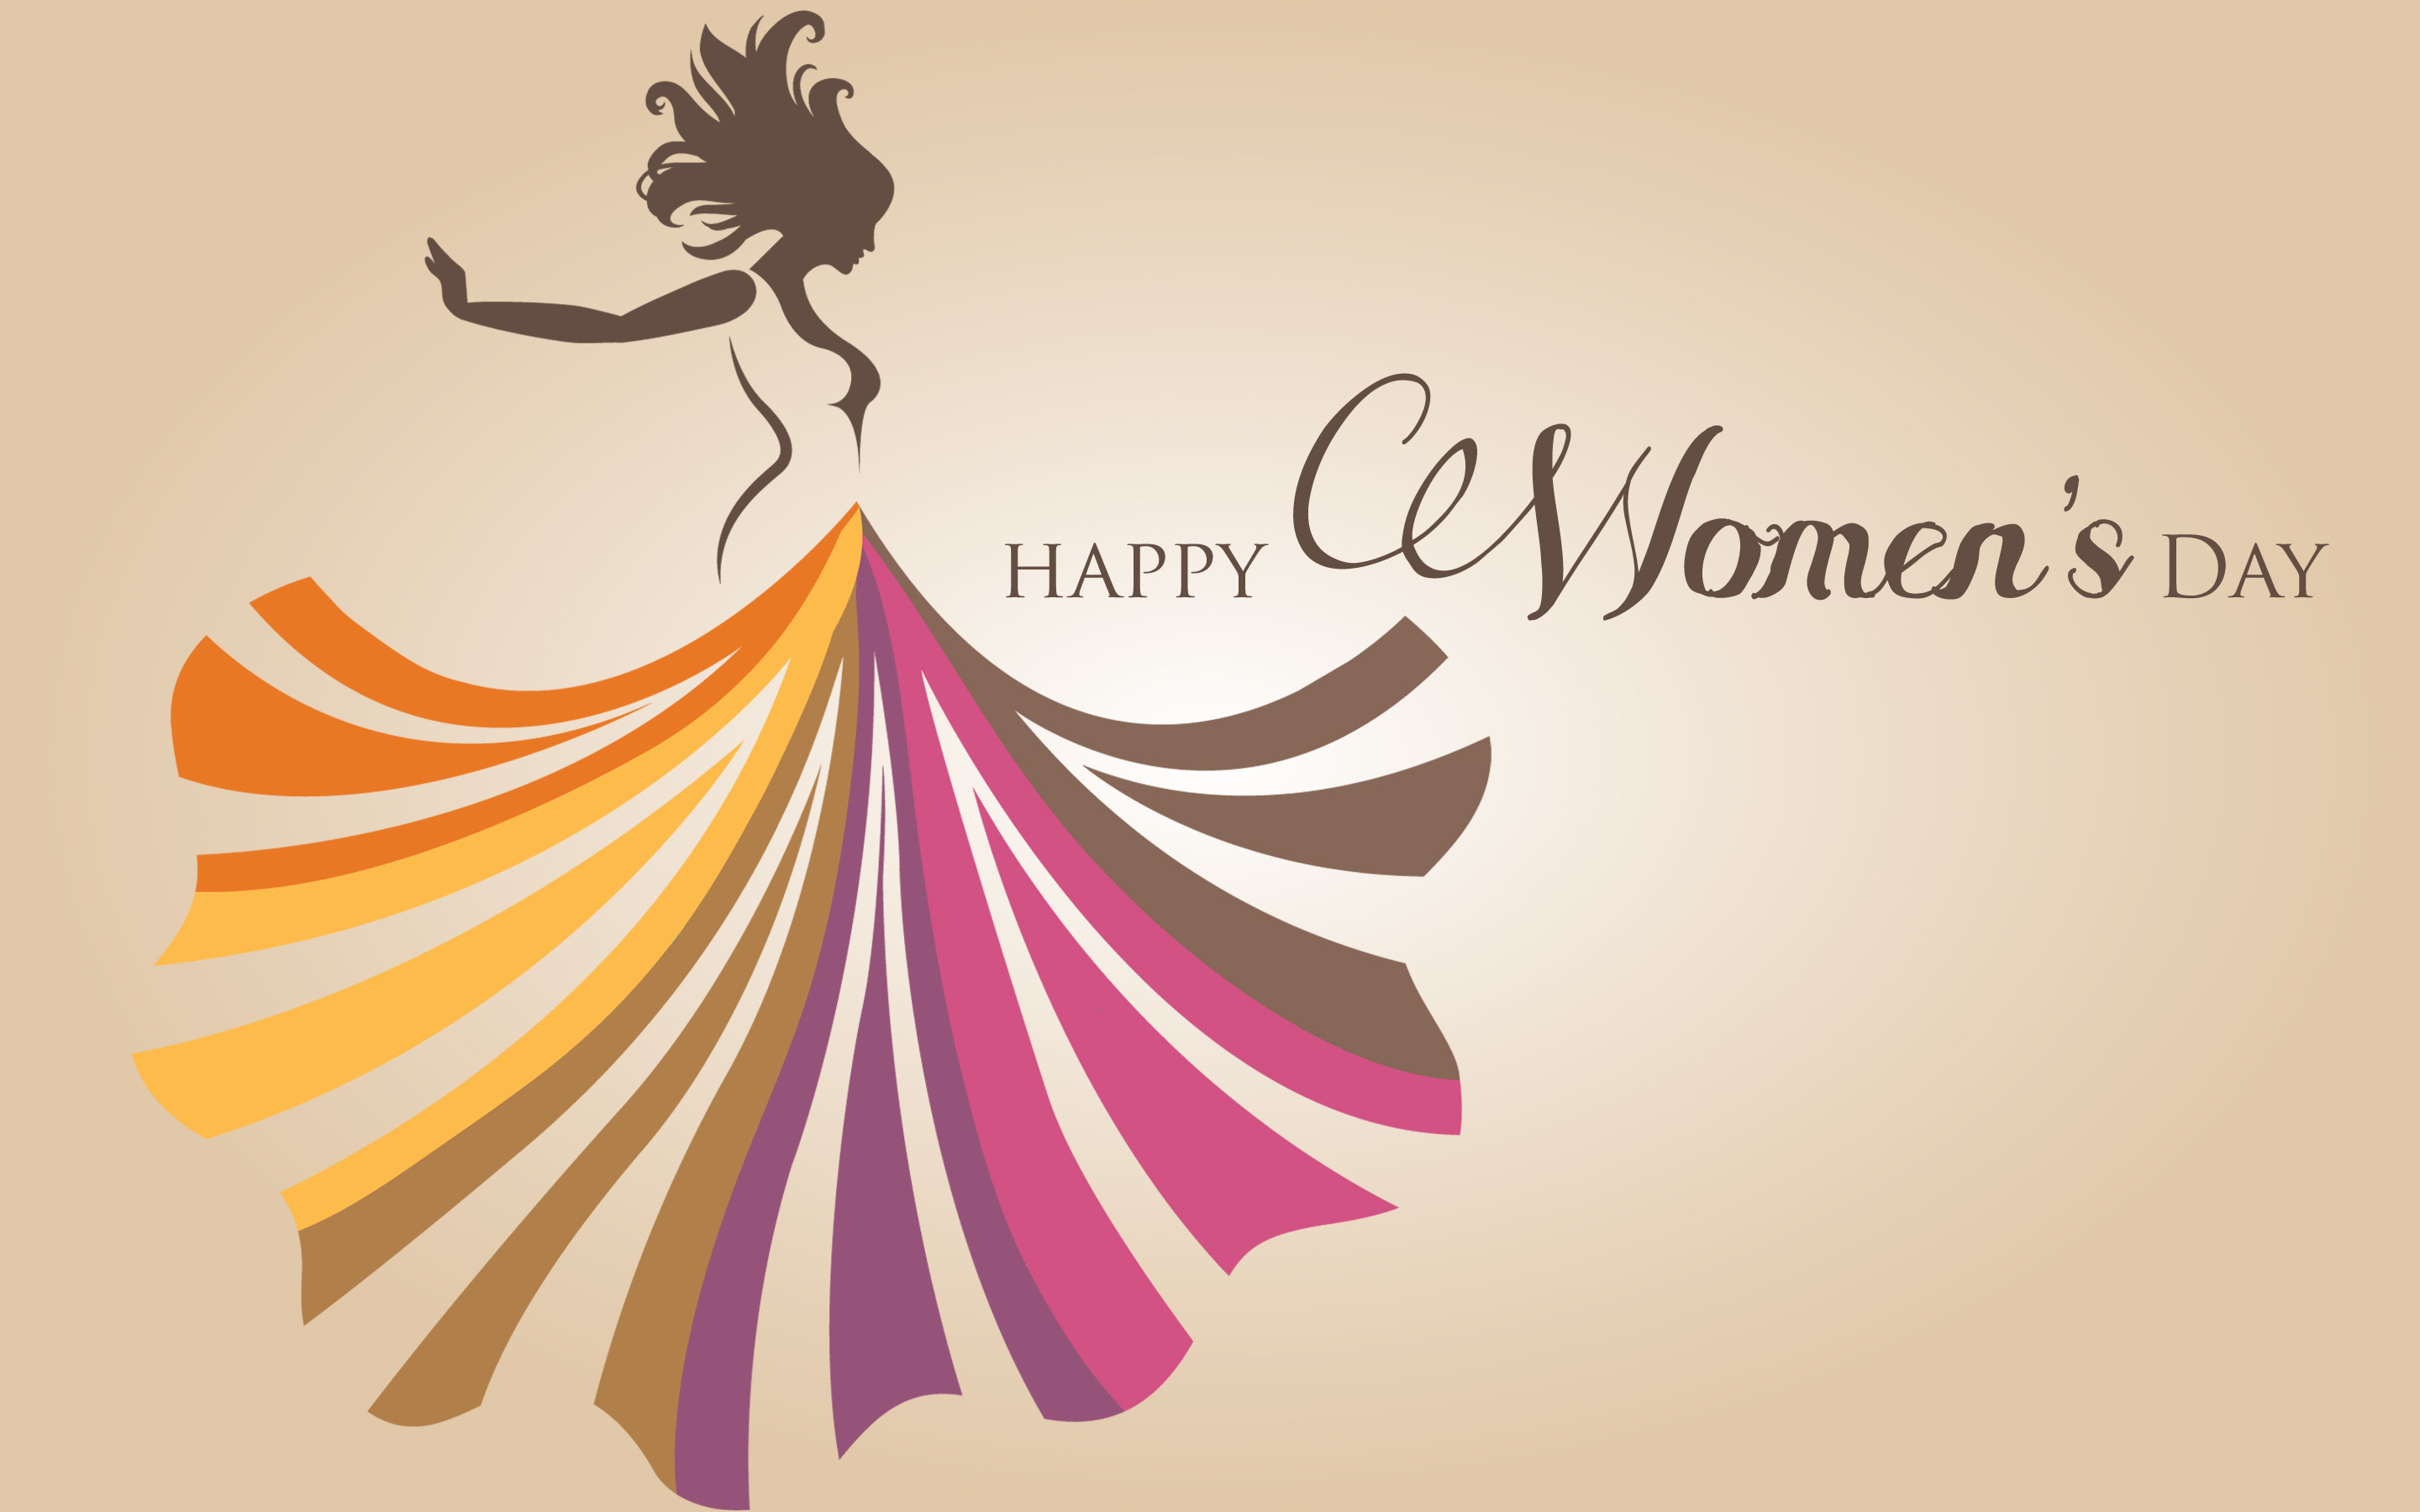 Happy Womens Day Sms Messages Wishes Yoursnews